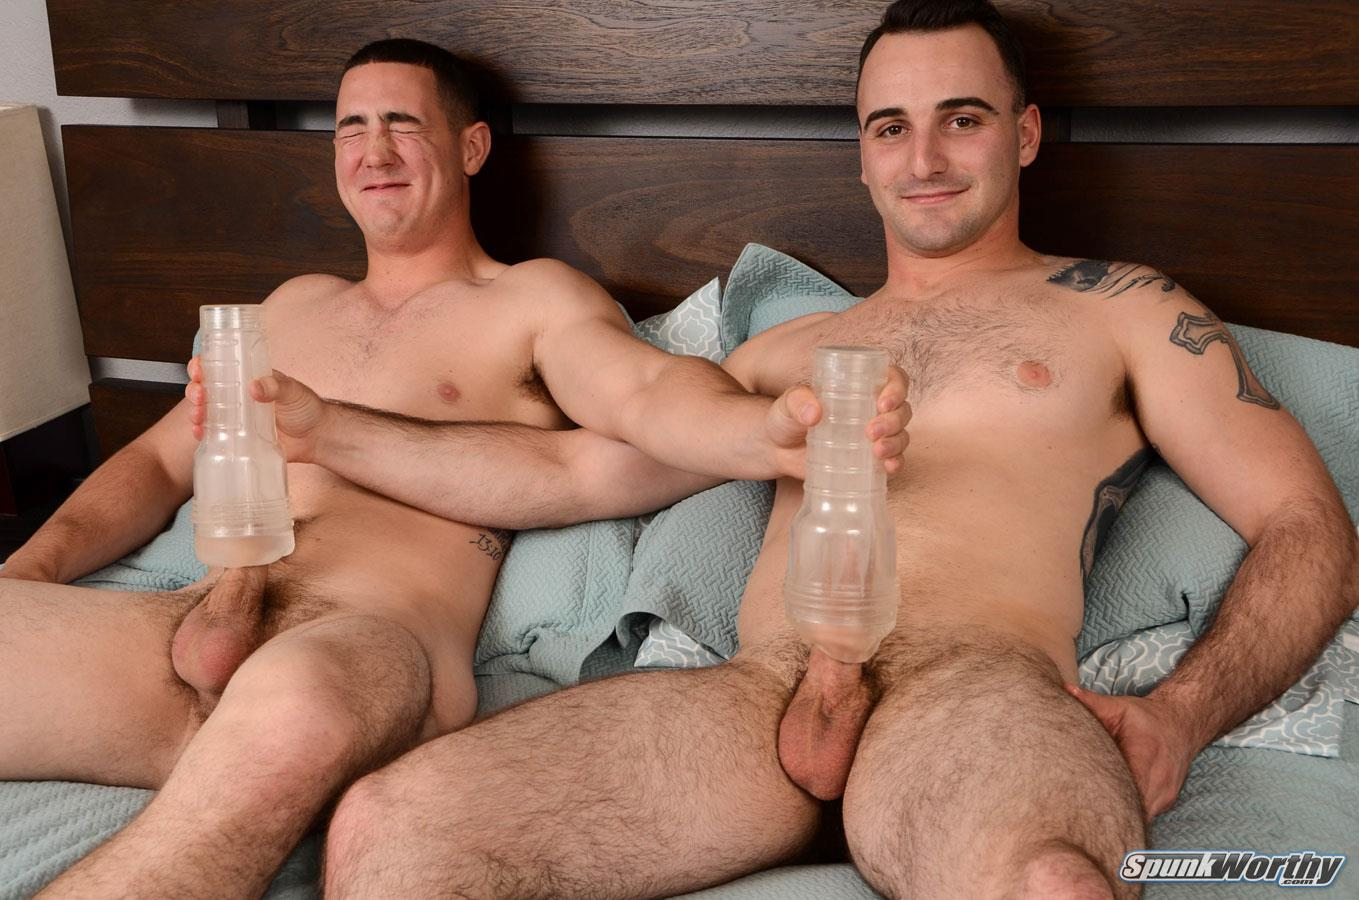 SpunkWorthy Damien and Tom Army Buddies Jerking Off Together Army Cock Amateur Gay Porn 15